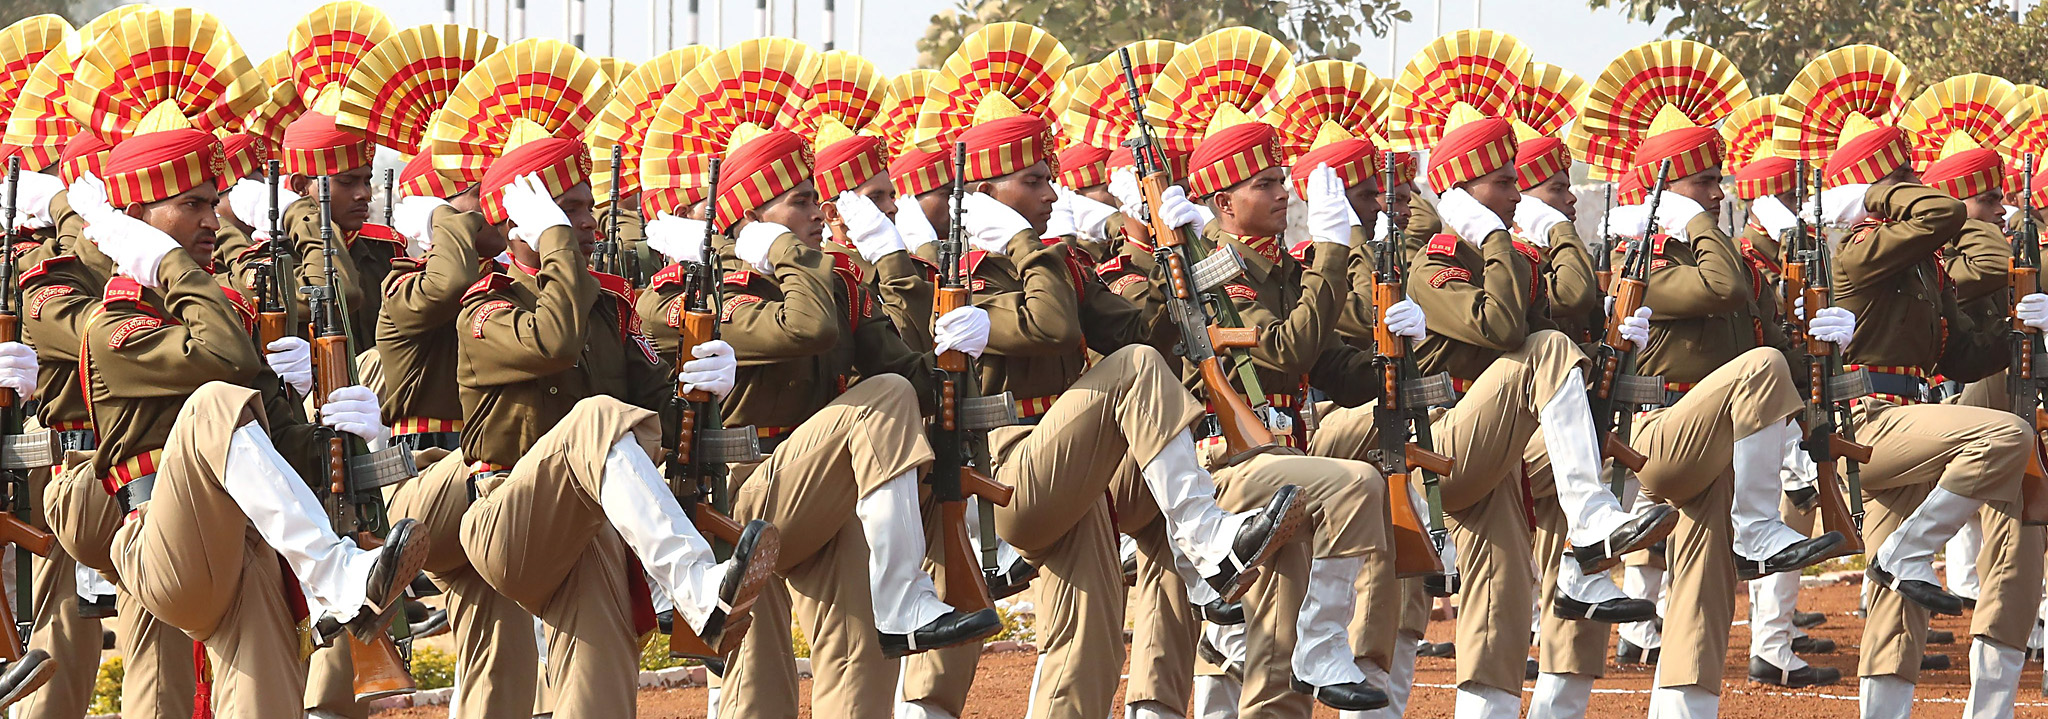 India's Central Armed Police Forcesí Sashastra Seema Bal (SSB) contigents...epa04006827 India's Central Armed Police Forcesí Sashastra Seema Bal (SSB) contigent  performs during the passing out parade at their training headquarters near Bhopal, India on 03 January 2014. Around 415 cadets from all over the country took part in the convocation parad after completing a rigorous training programme. SSB is also celebrating its golden jubilee year of its foundation.  EPA/SANJEEV GUPTA